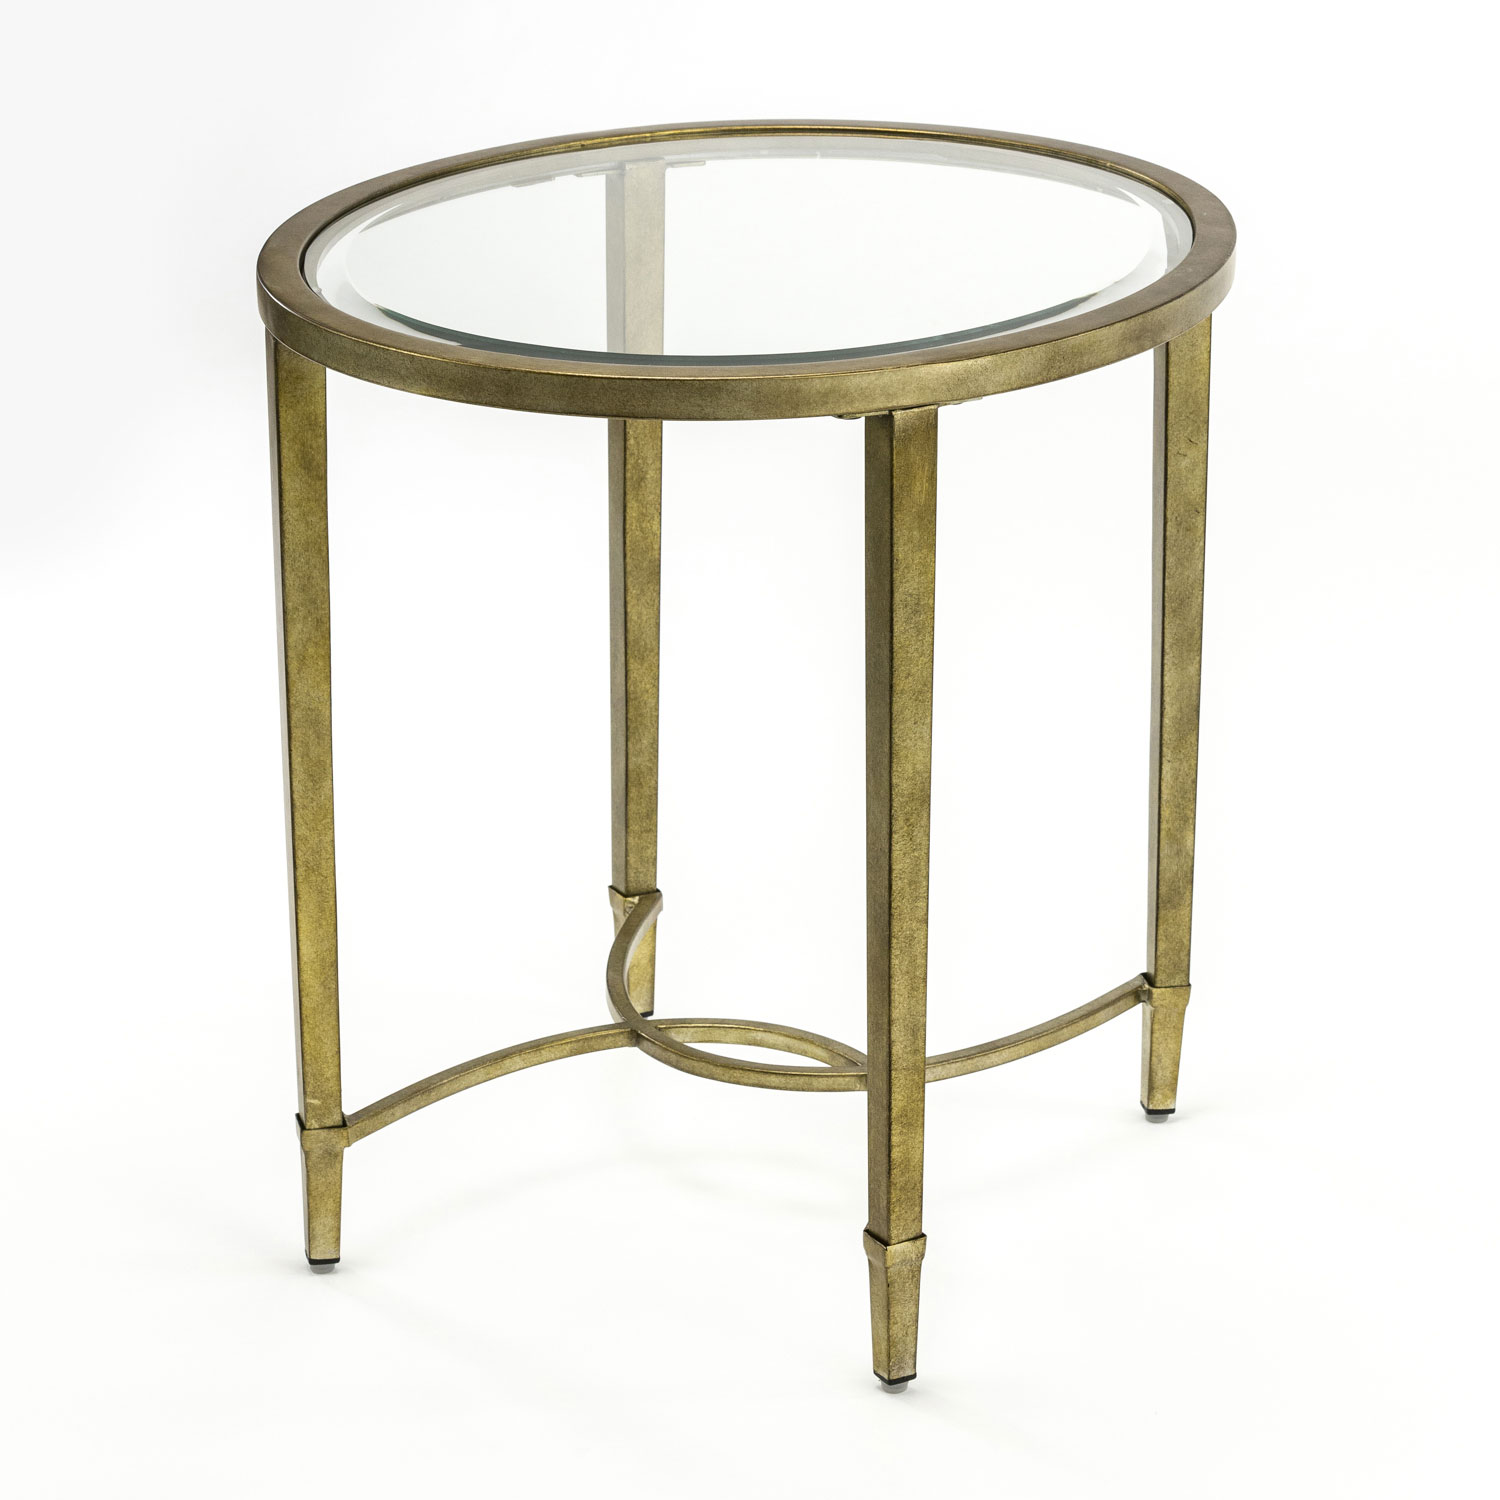 first linden antique silver and metal oval end table clarissa accent hover zoom tiny drum kit throne bamboo nest tables outdoor occasional beach theme decor console brass ship